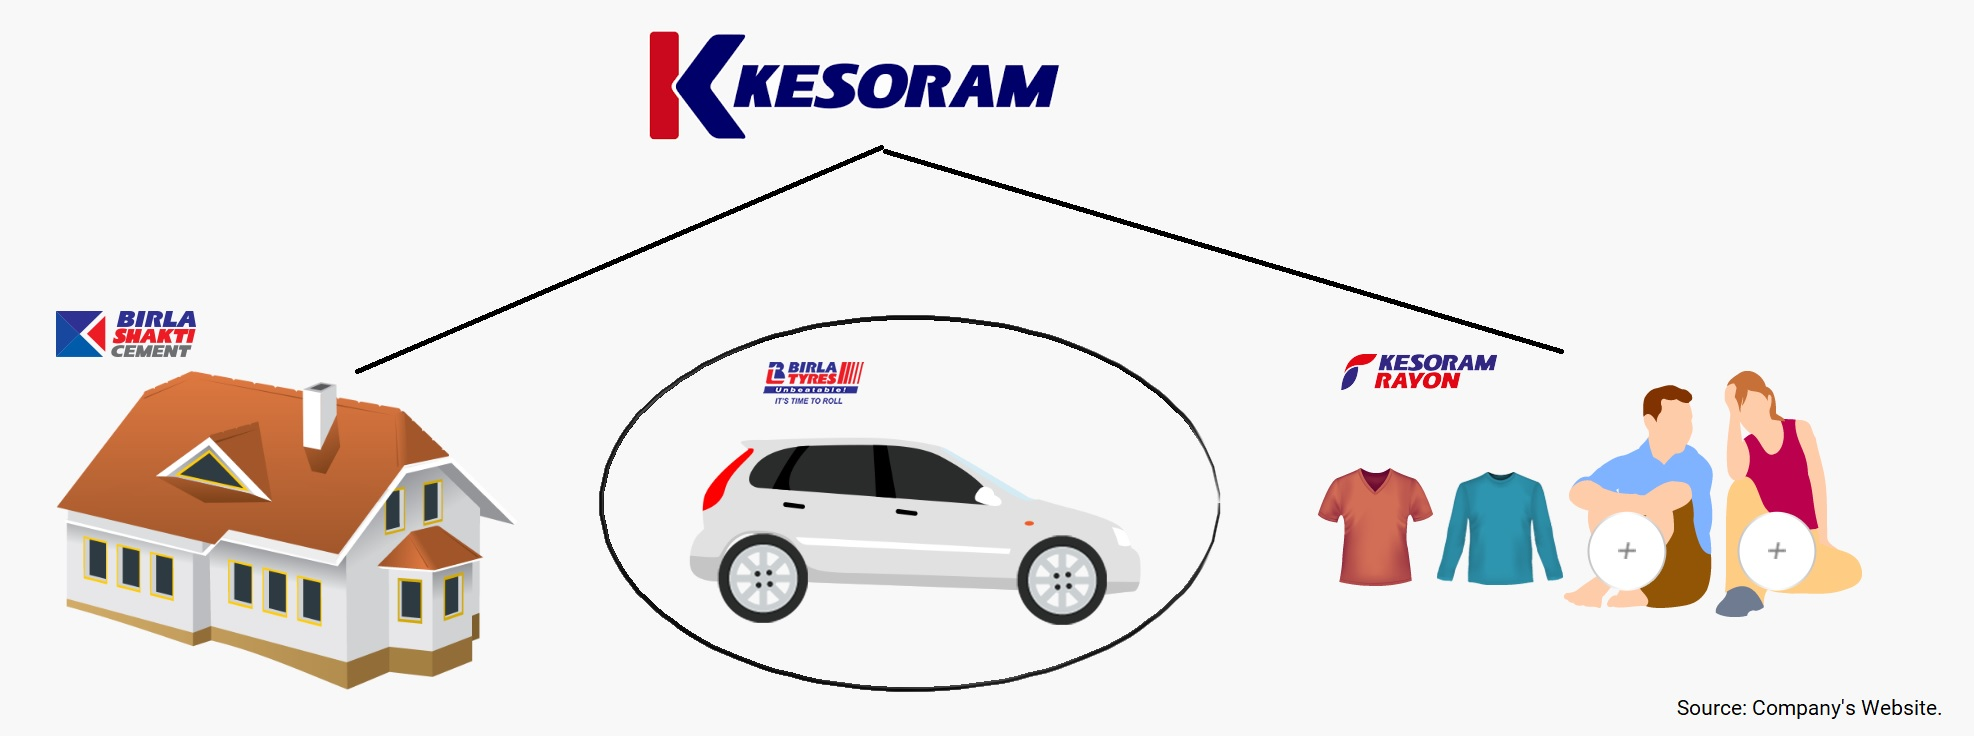 Kesoram-Demerger-Tyre-Business-Birla